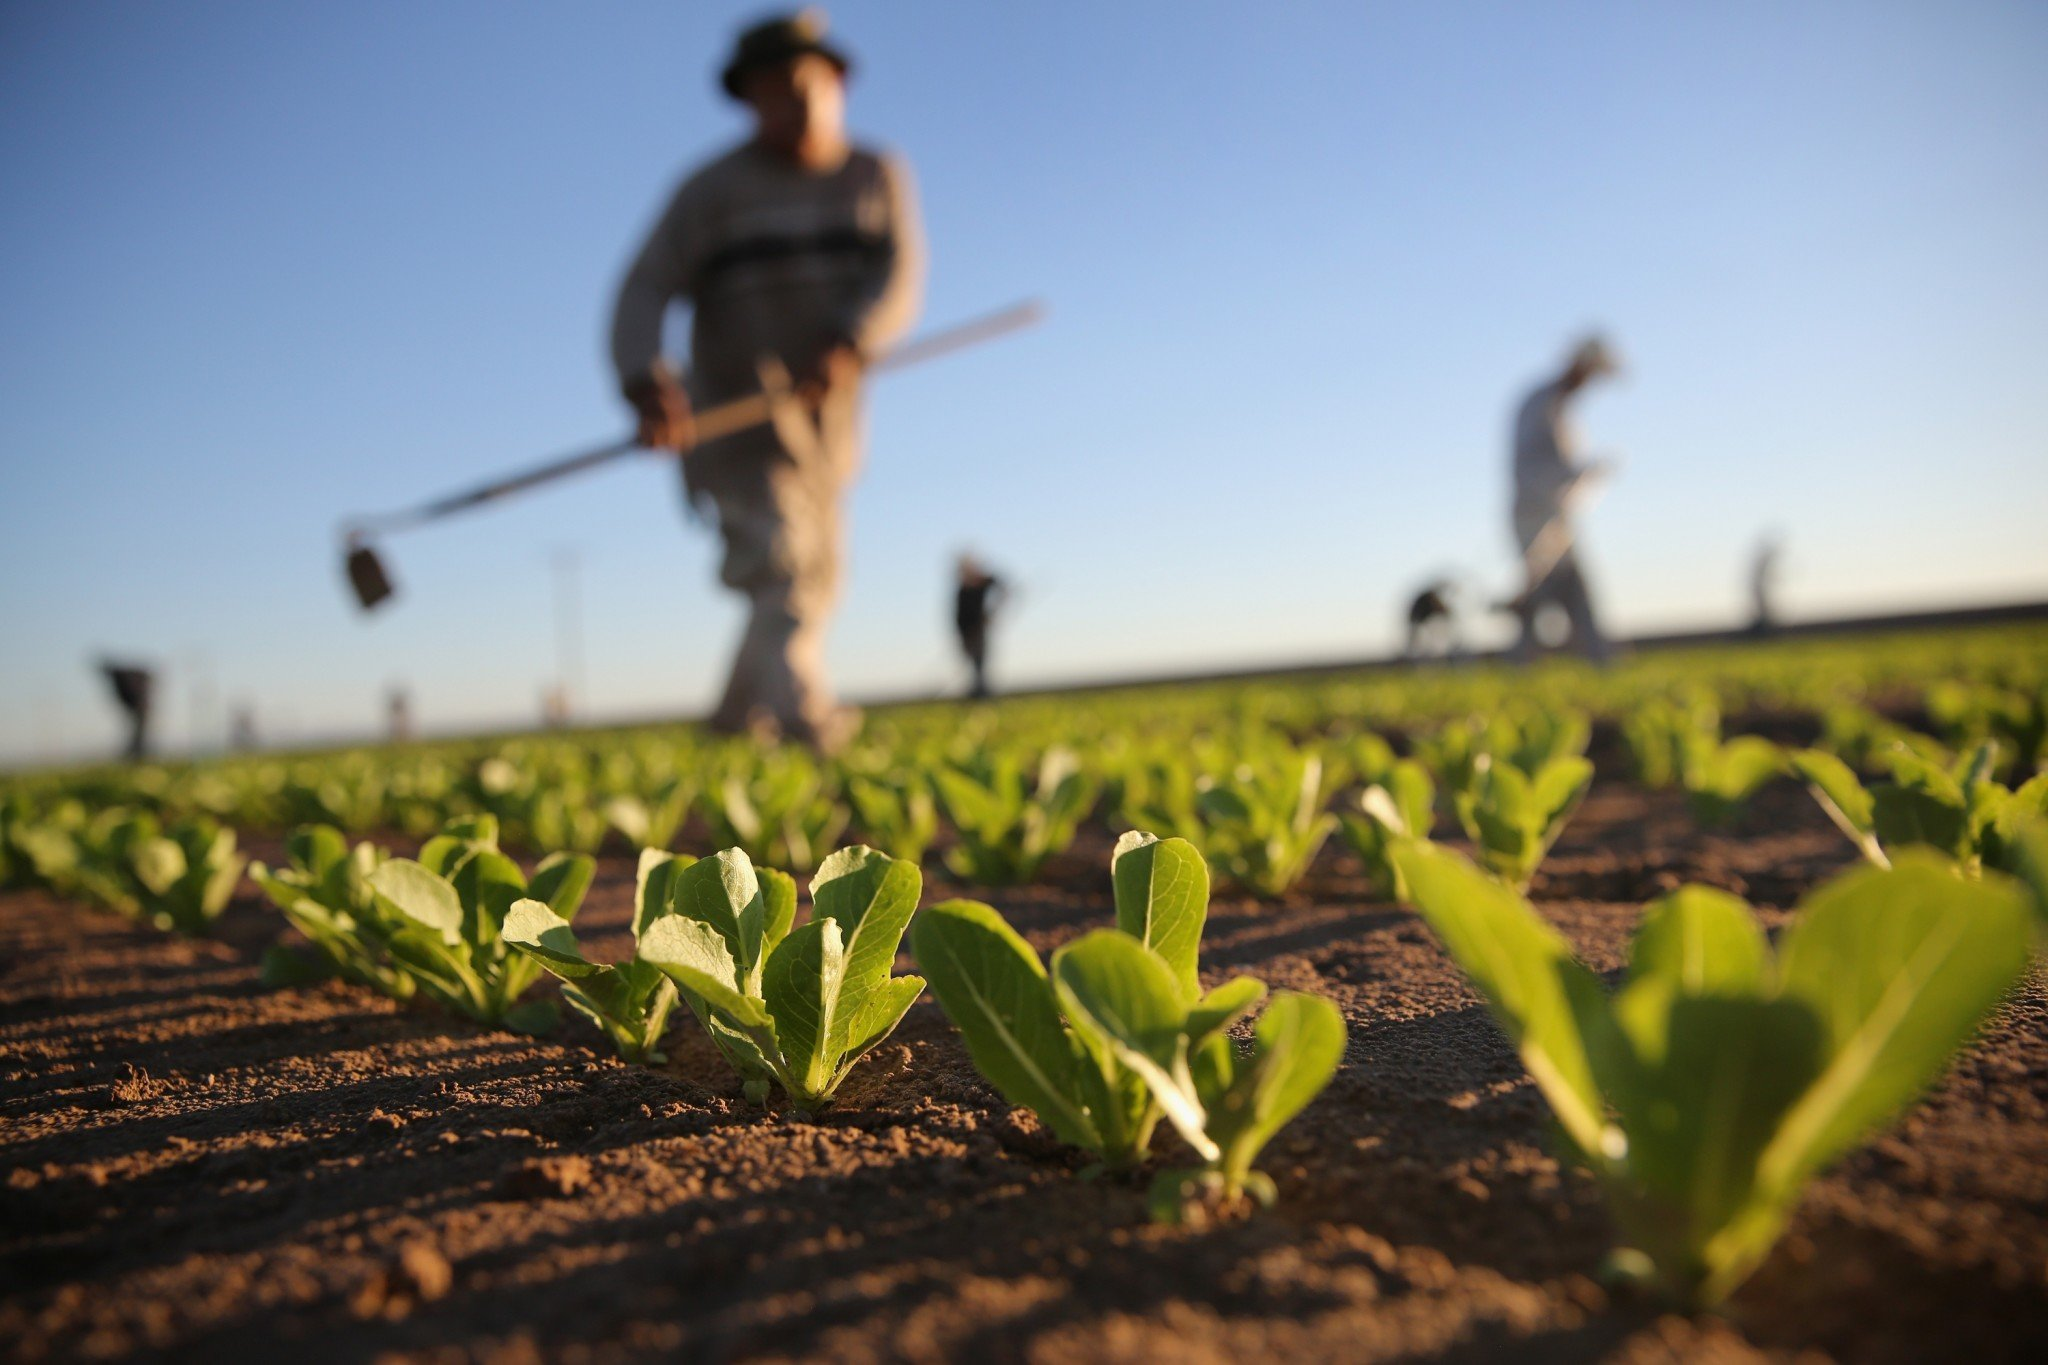 Mexican agricultural workers cultivate romaine lettuce on a farm on October 8, 2013 in Holtville, California. (Photo by John Moore/Getty Images)